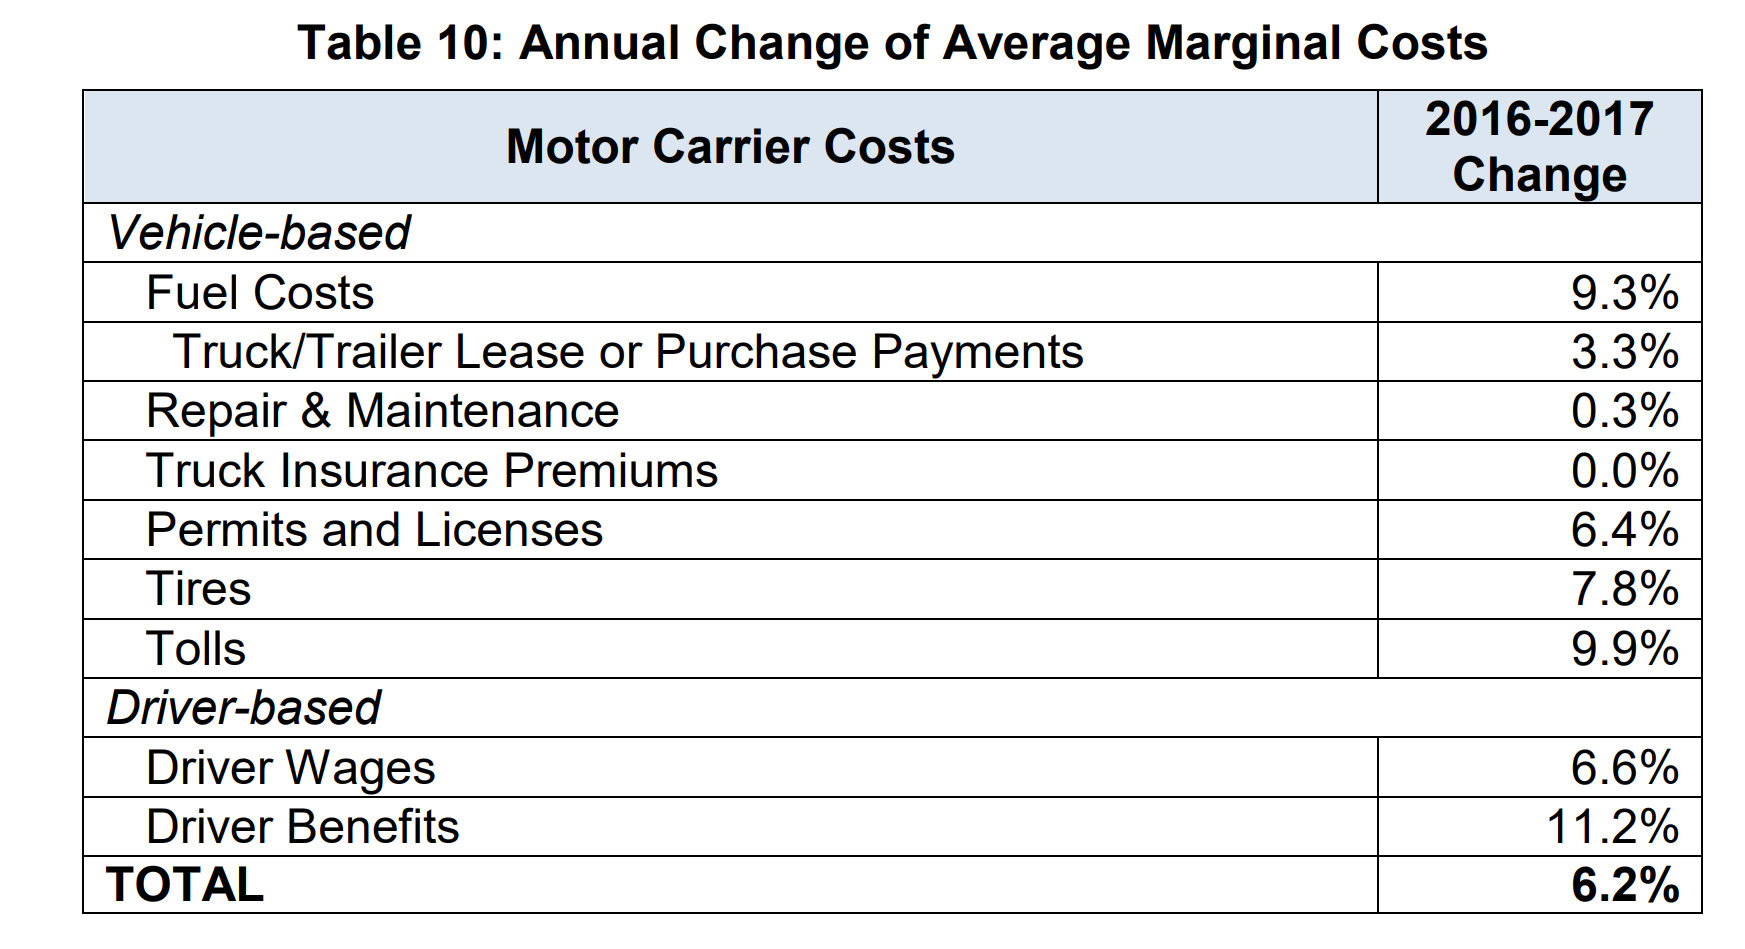 Table showing annual change of average marginal costs related to motor carrier costs